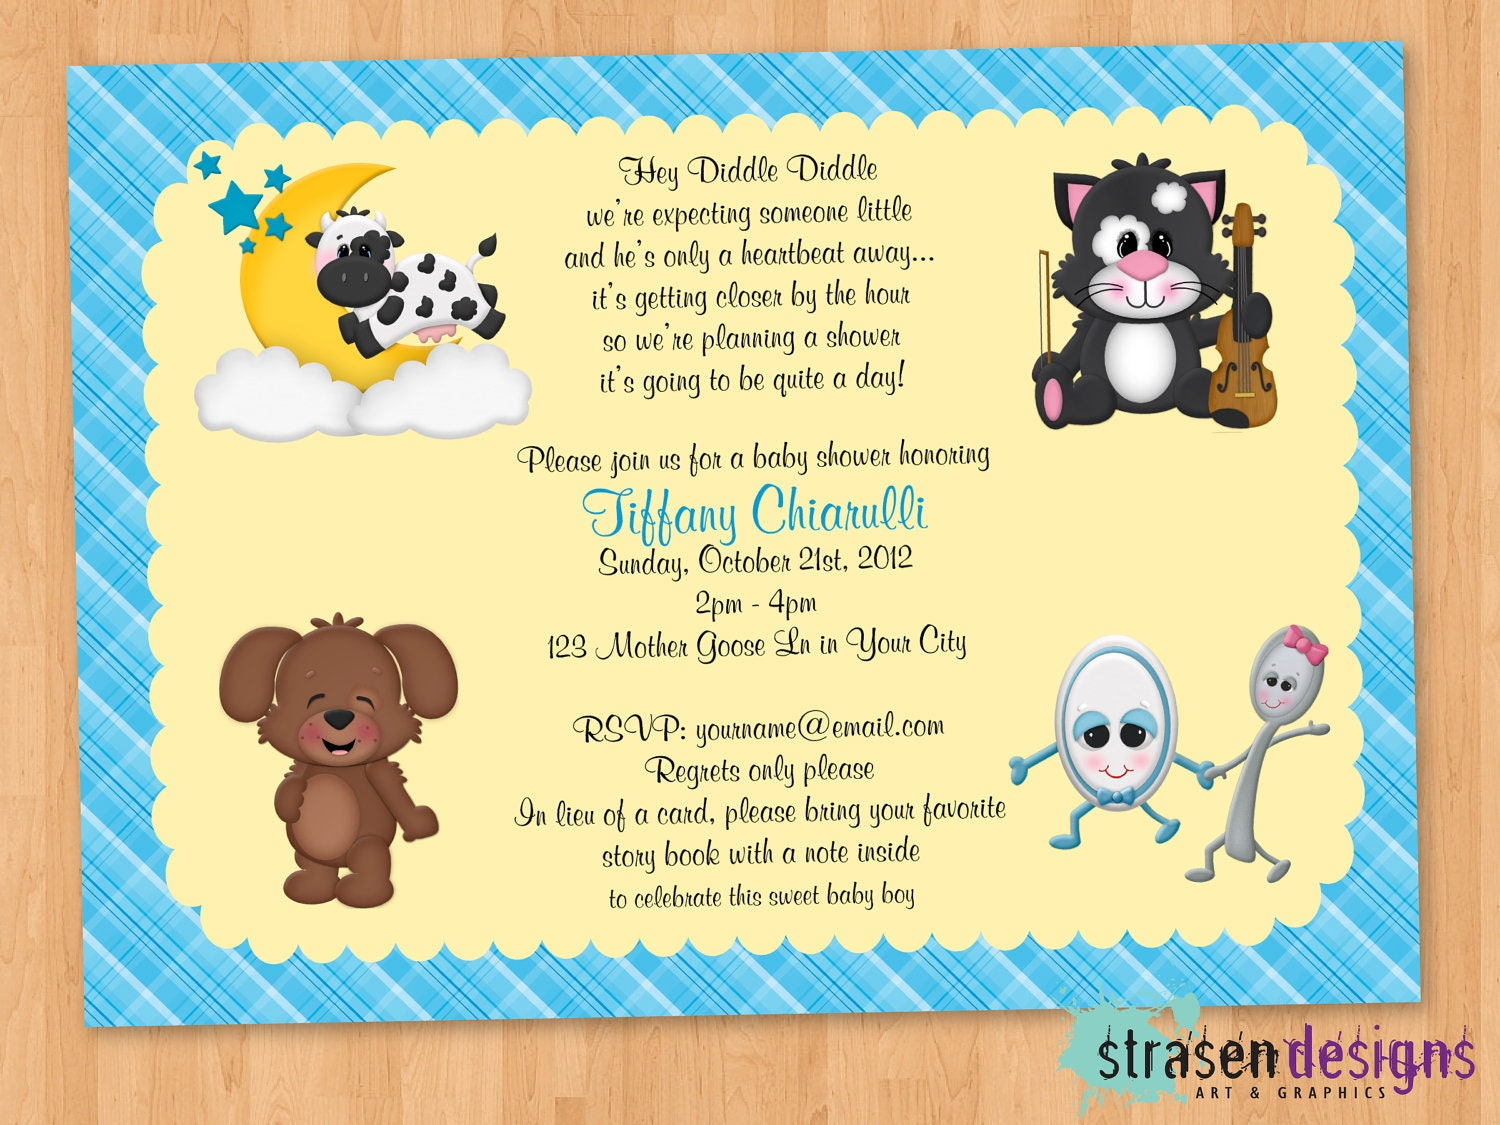 Nursery rhyme hey diddle diddle baby shower invitation zoom filmwisefo